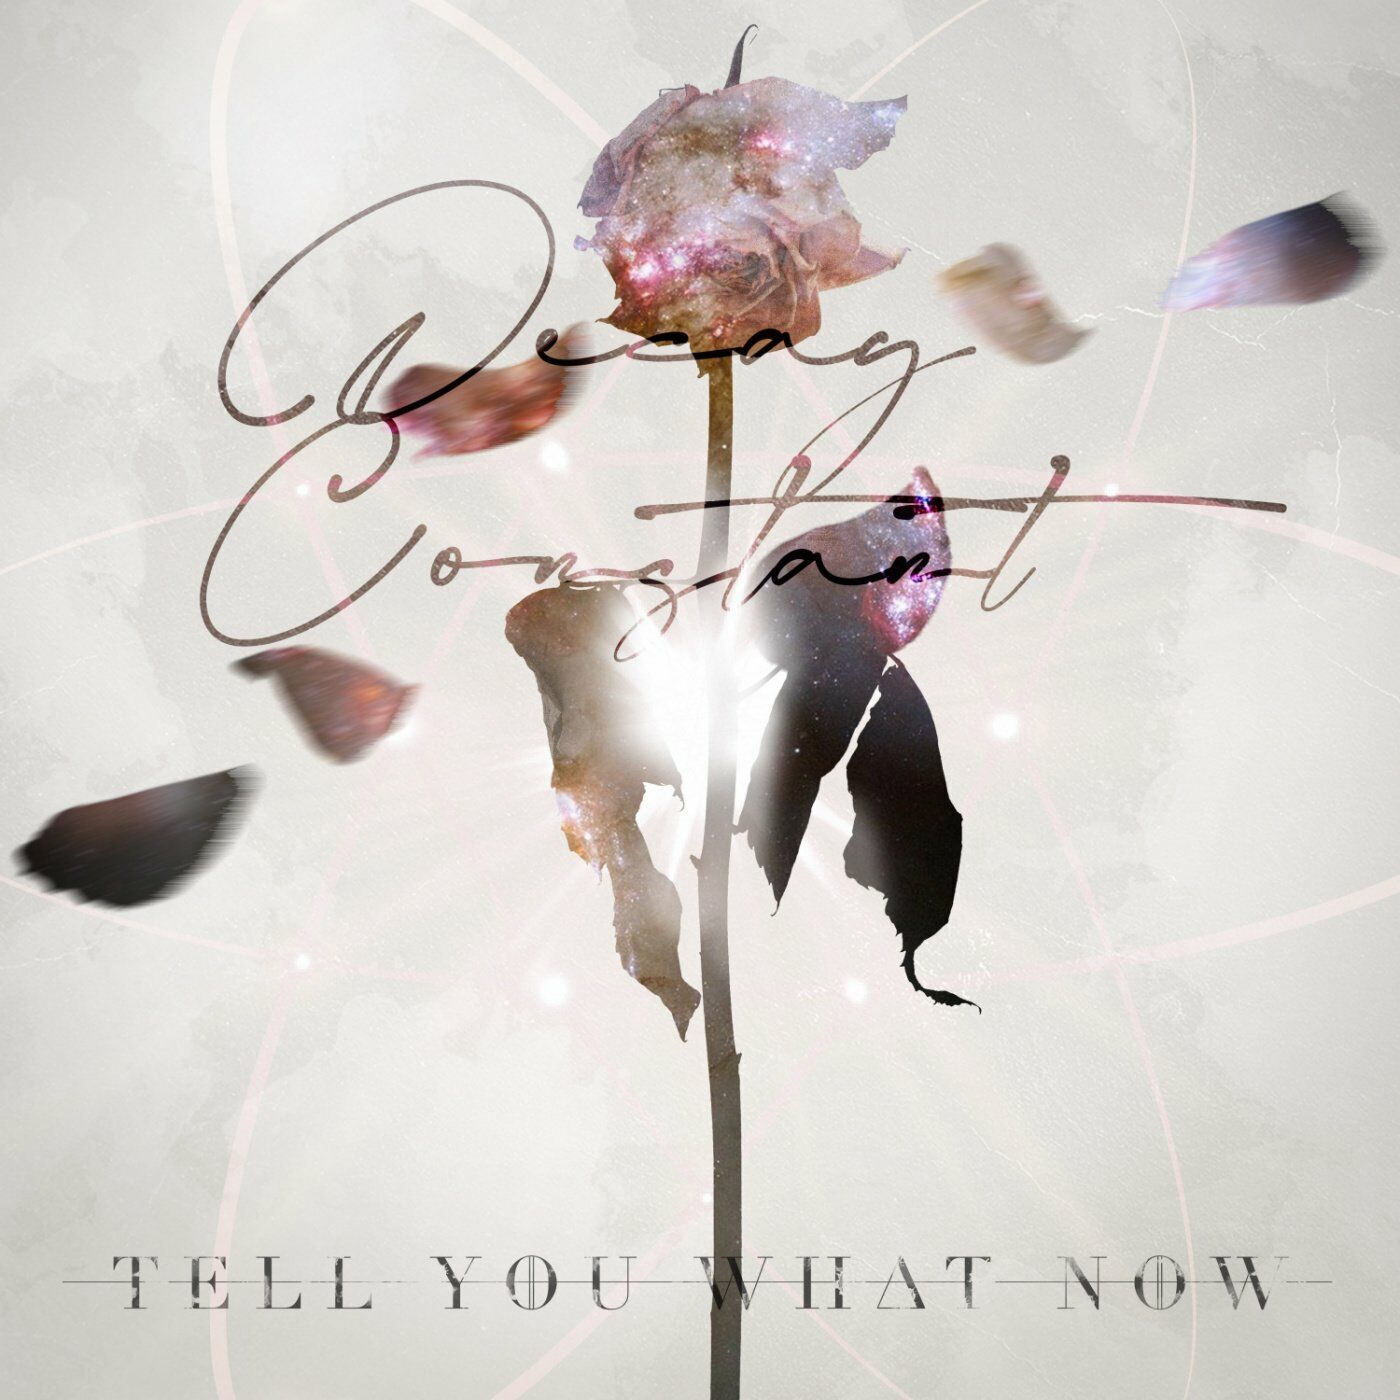 Tell You What Now - Decay Constant [single] (2021)